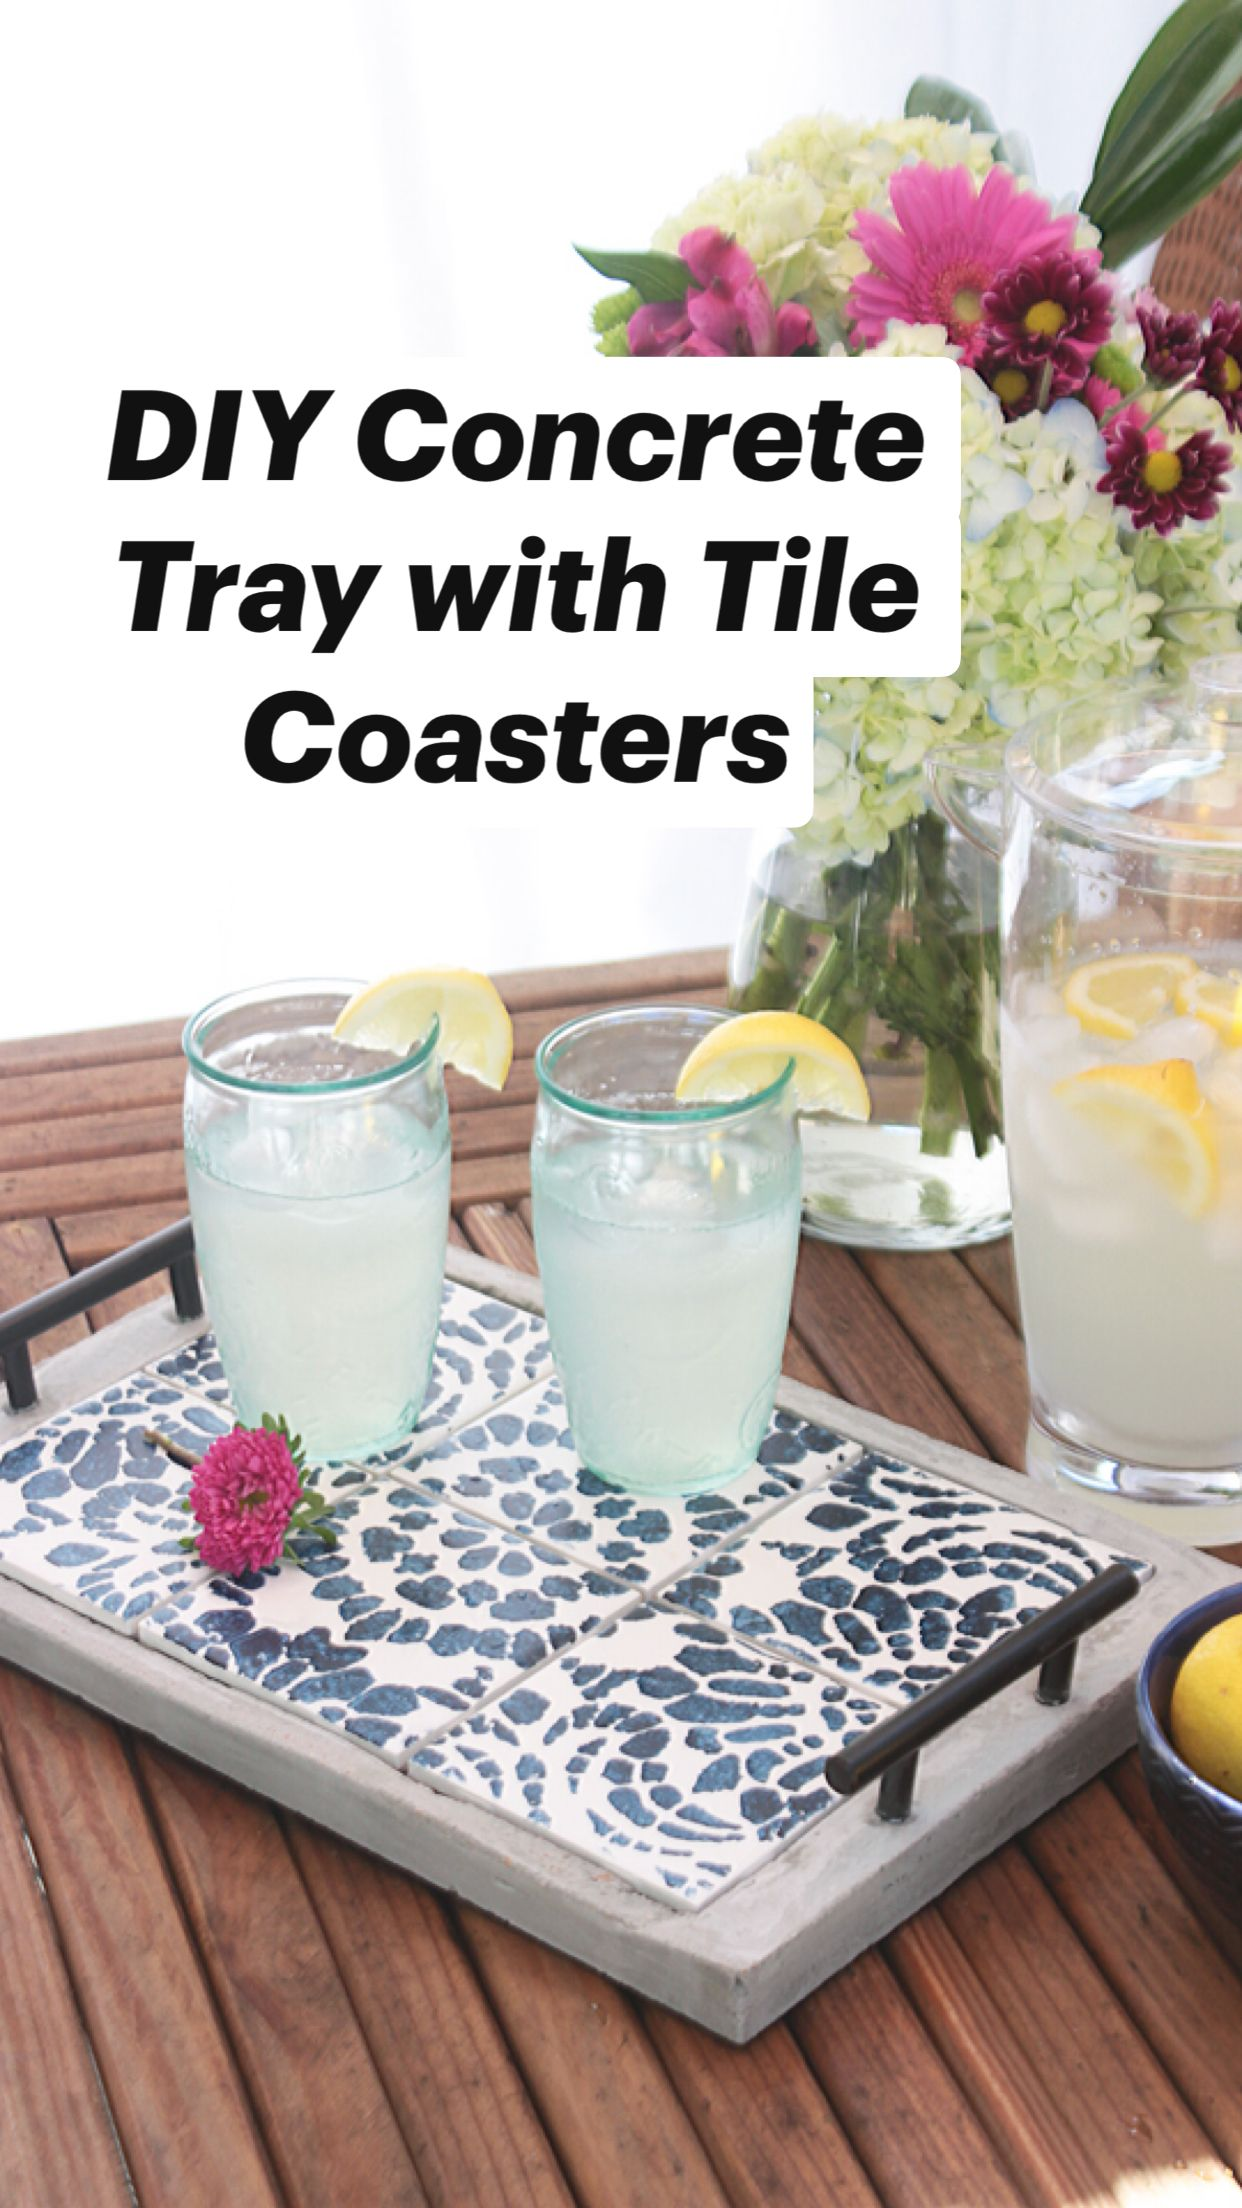 DIY Concrete Tray with Tile Coasters